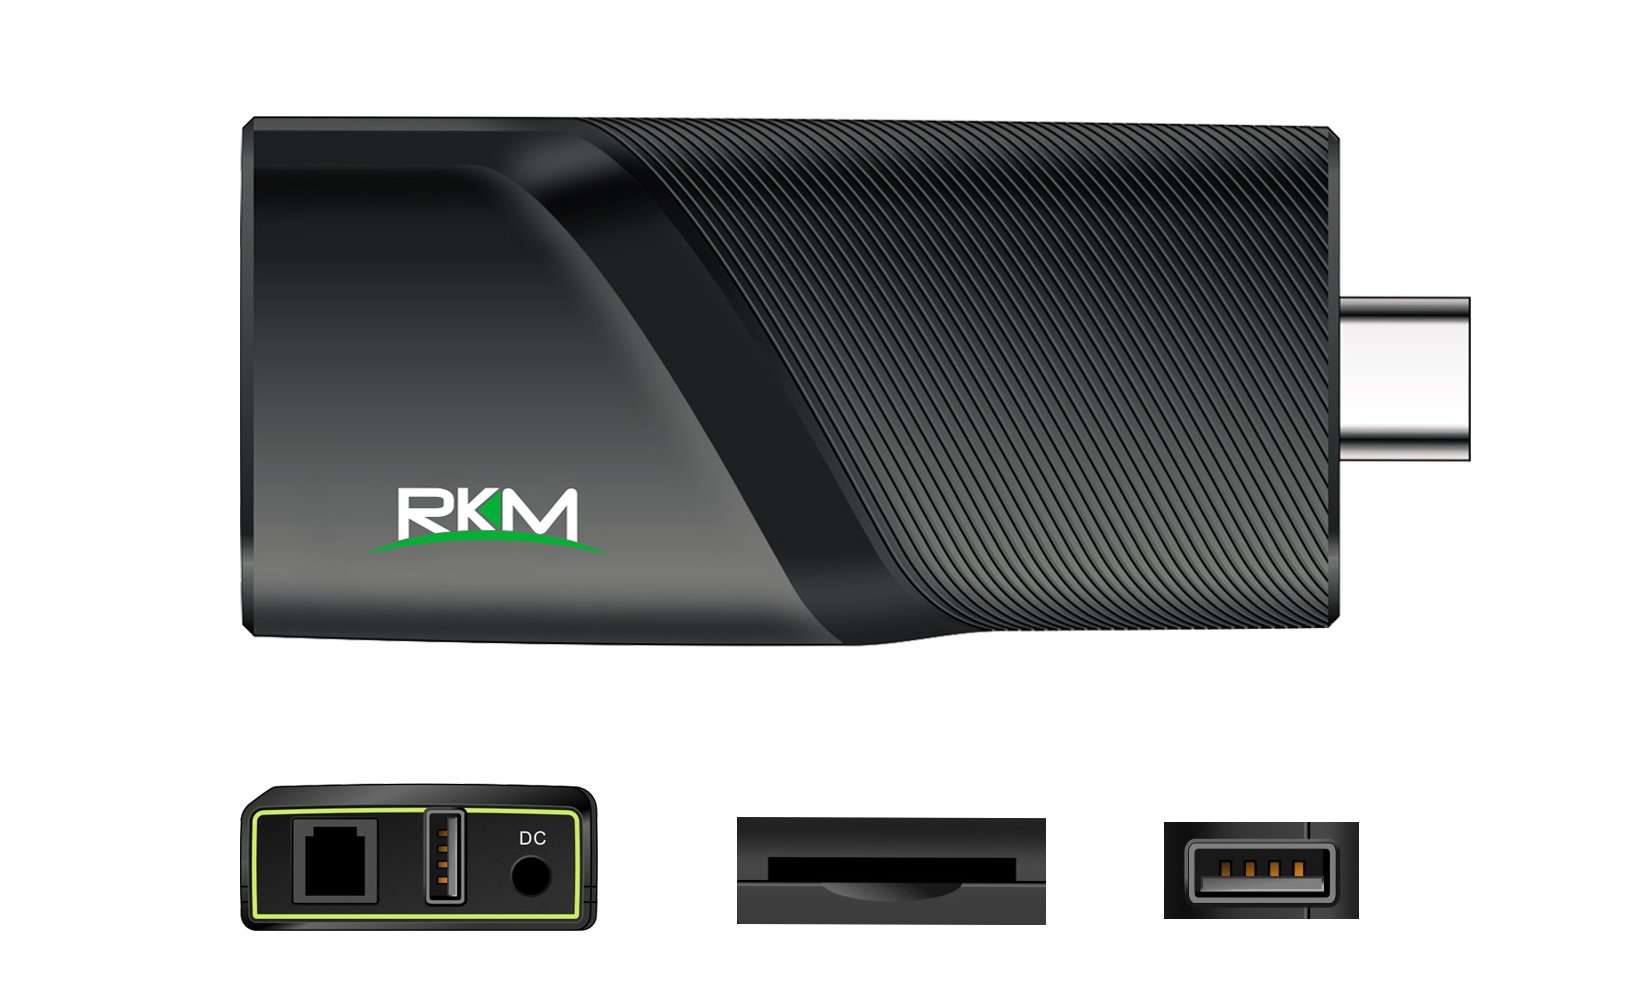 RKM Quad Core 4k Android Mini Pc with 2g Ram/16g Rom, 2.4g/5g Wifi Gbit Ethernet Bluetooth4.0 1.8ghz Hdmi Player- Smart Streaming Media Player v5